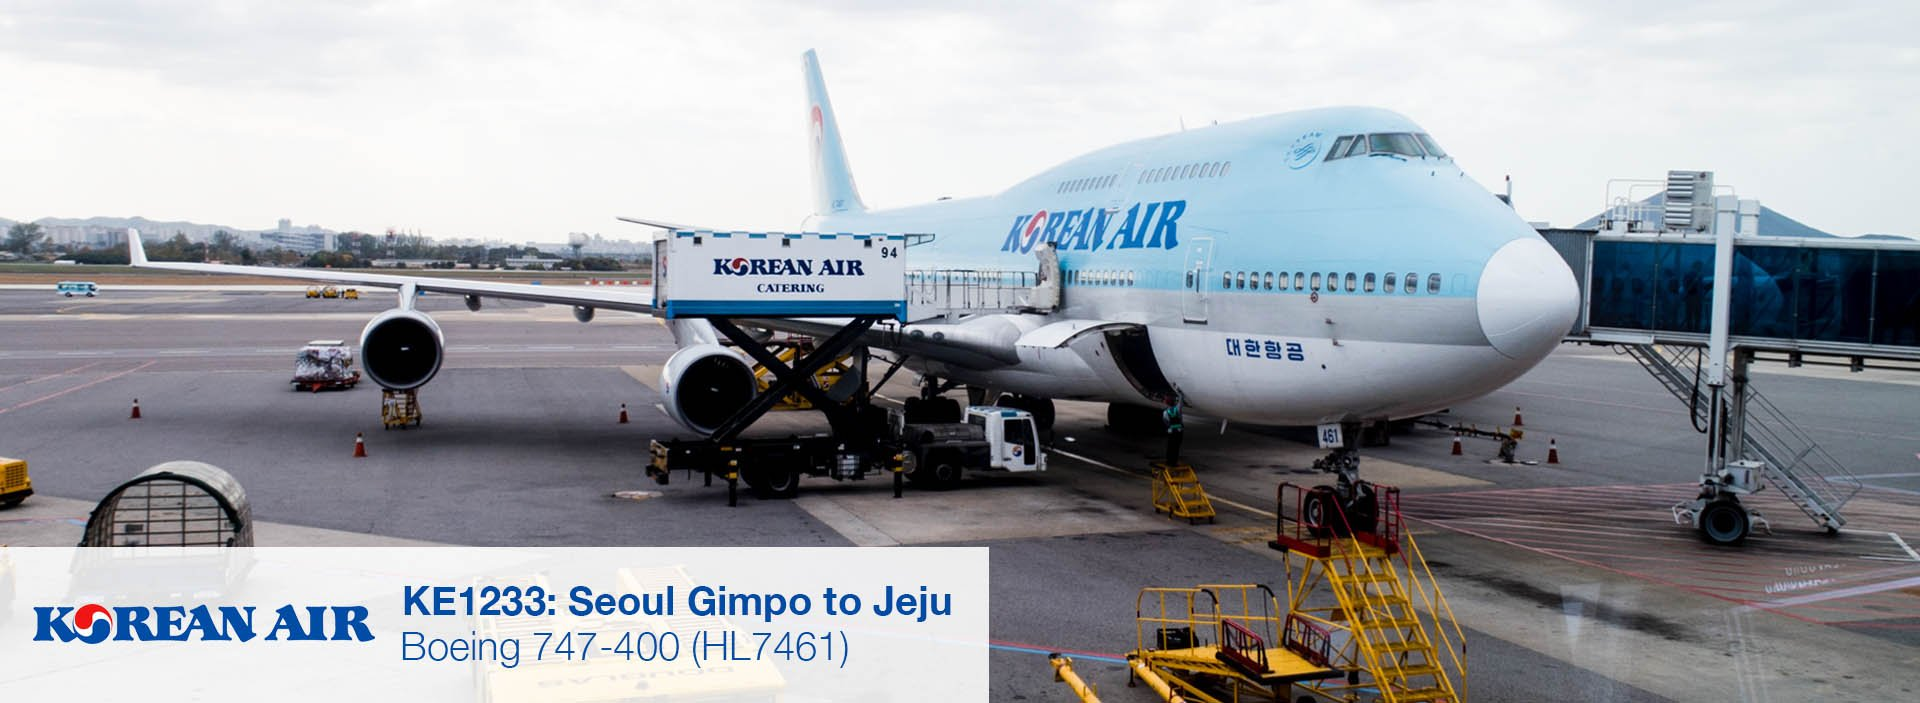 Flight Review: Korean Air 747-400 Economy Class from Seoul Gimpo to Jeju